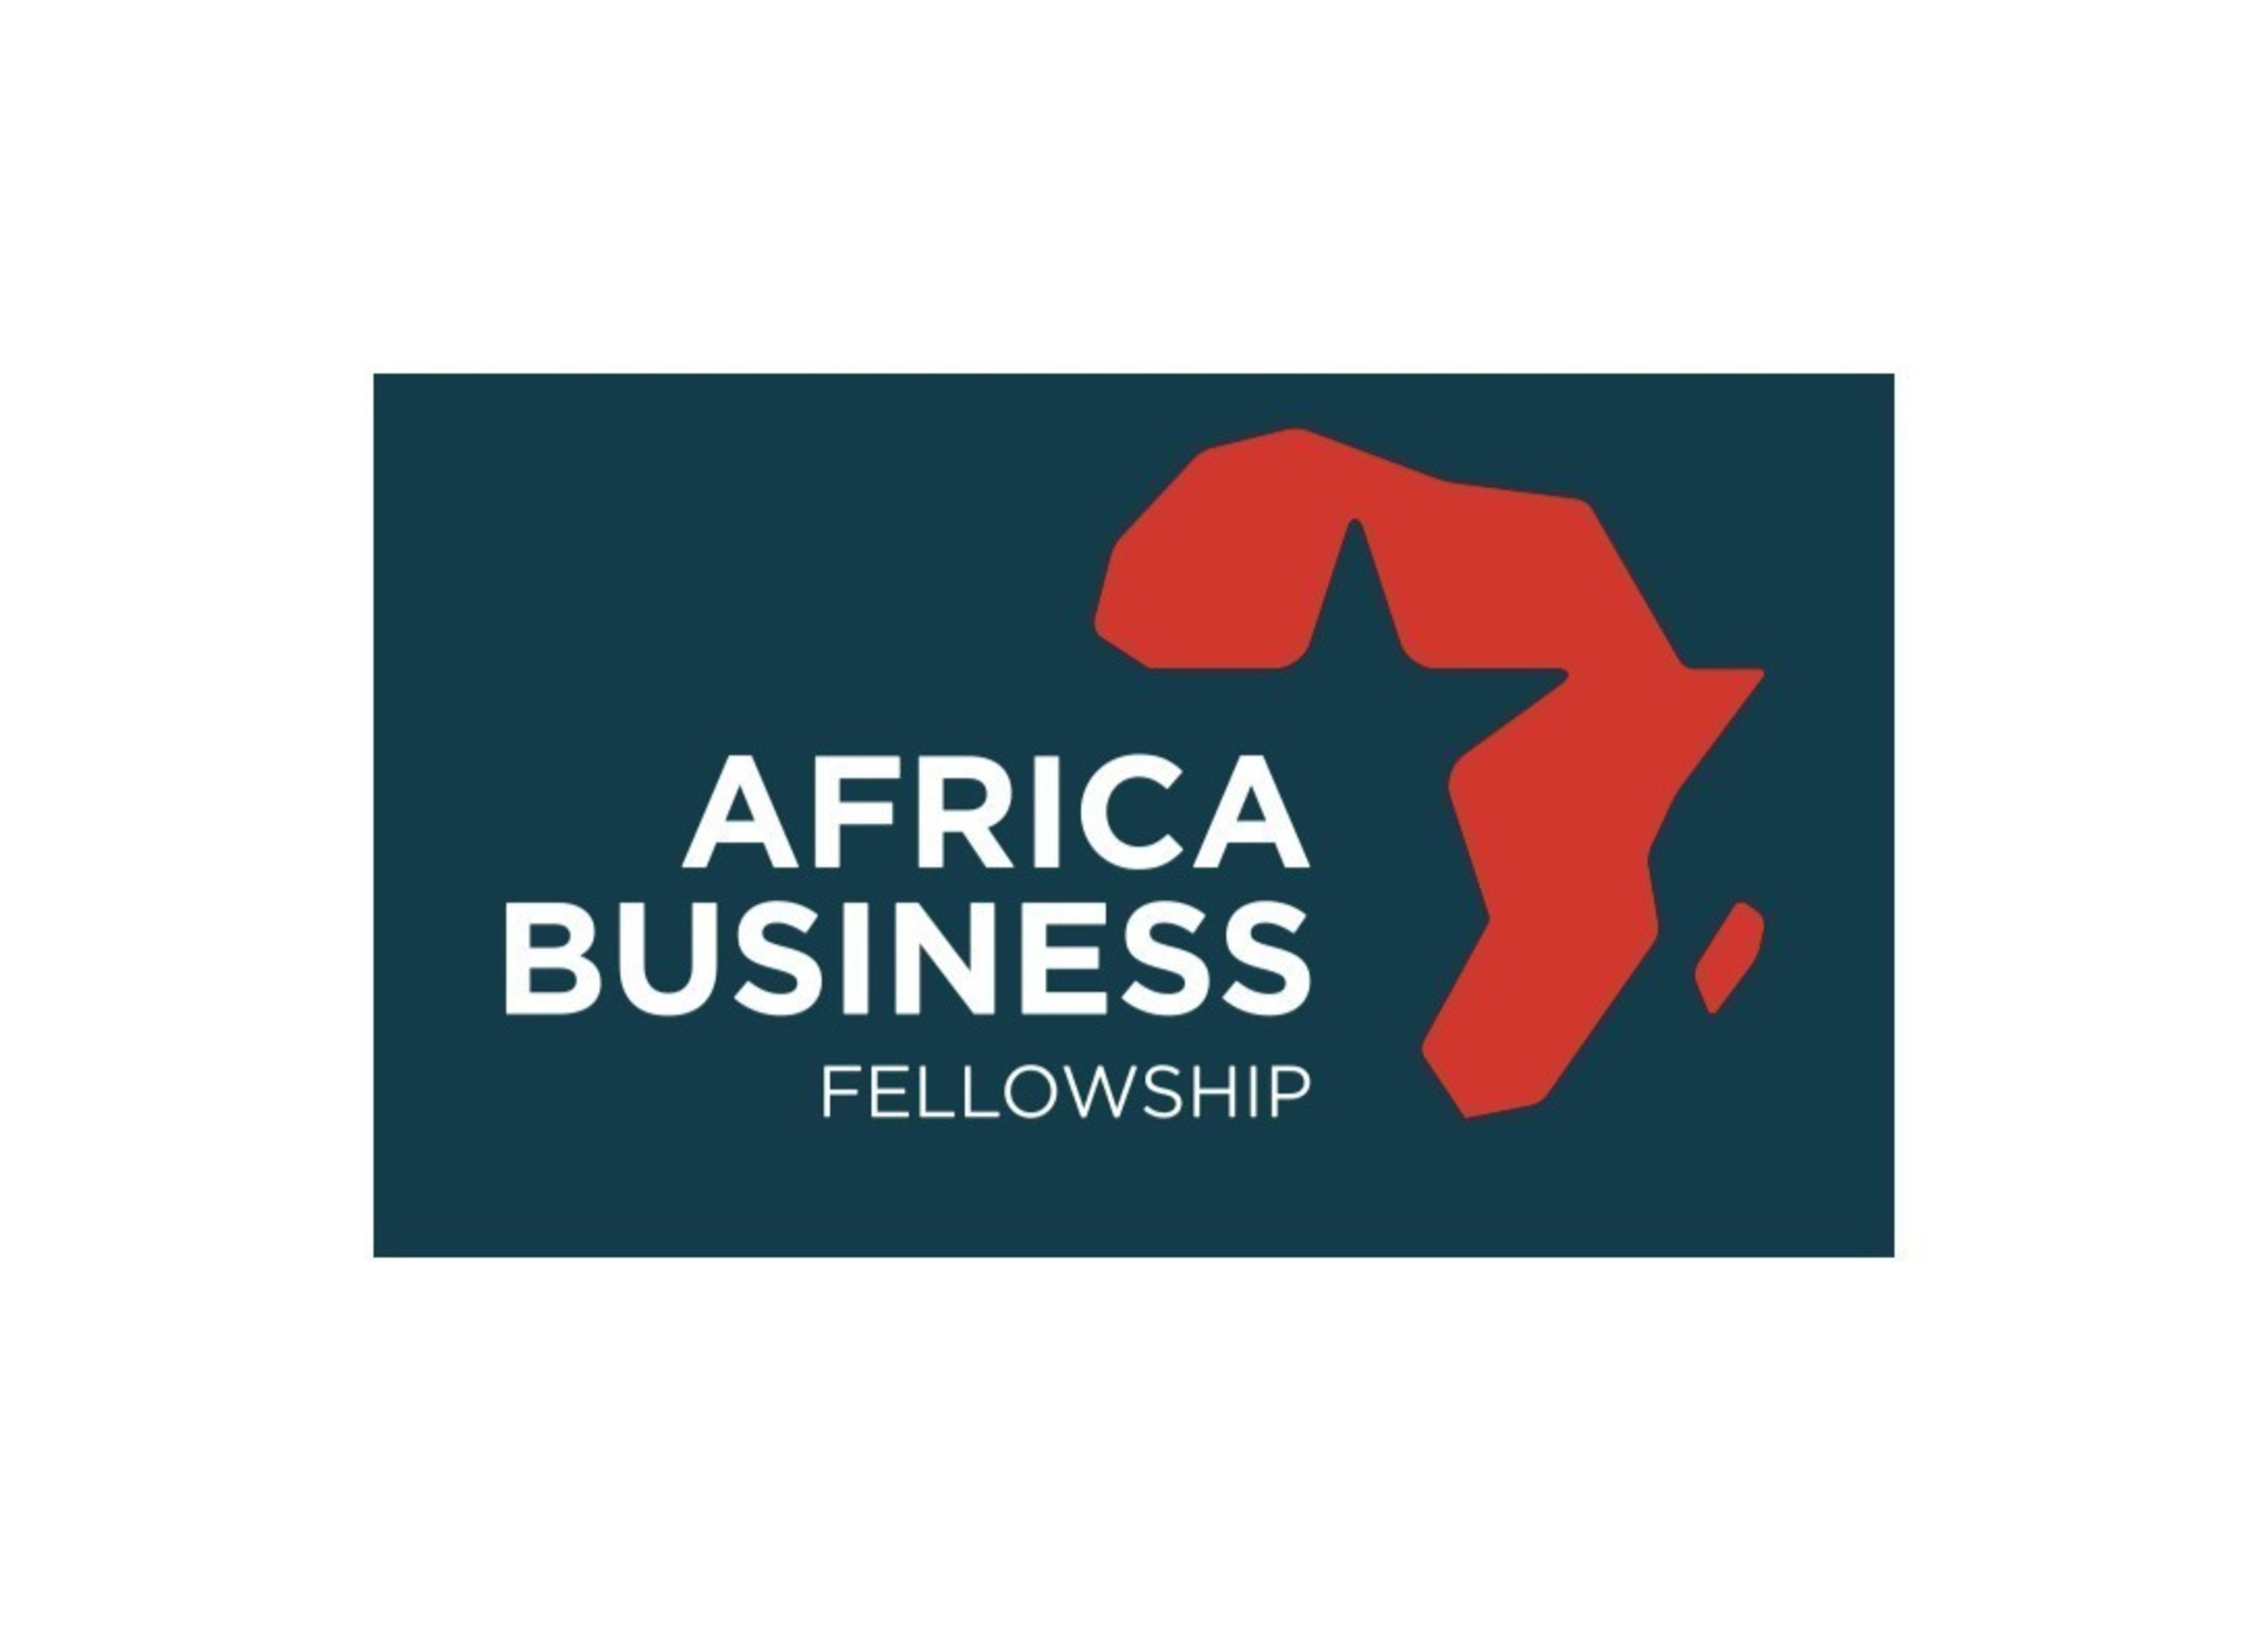 Africa Business Fellowship